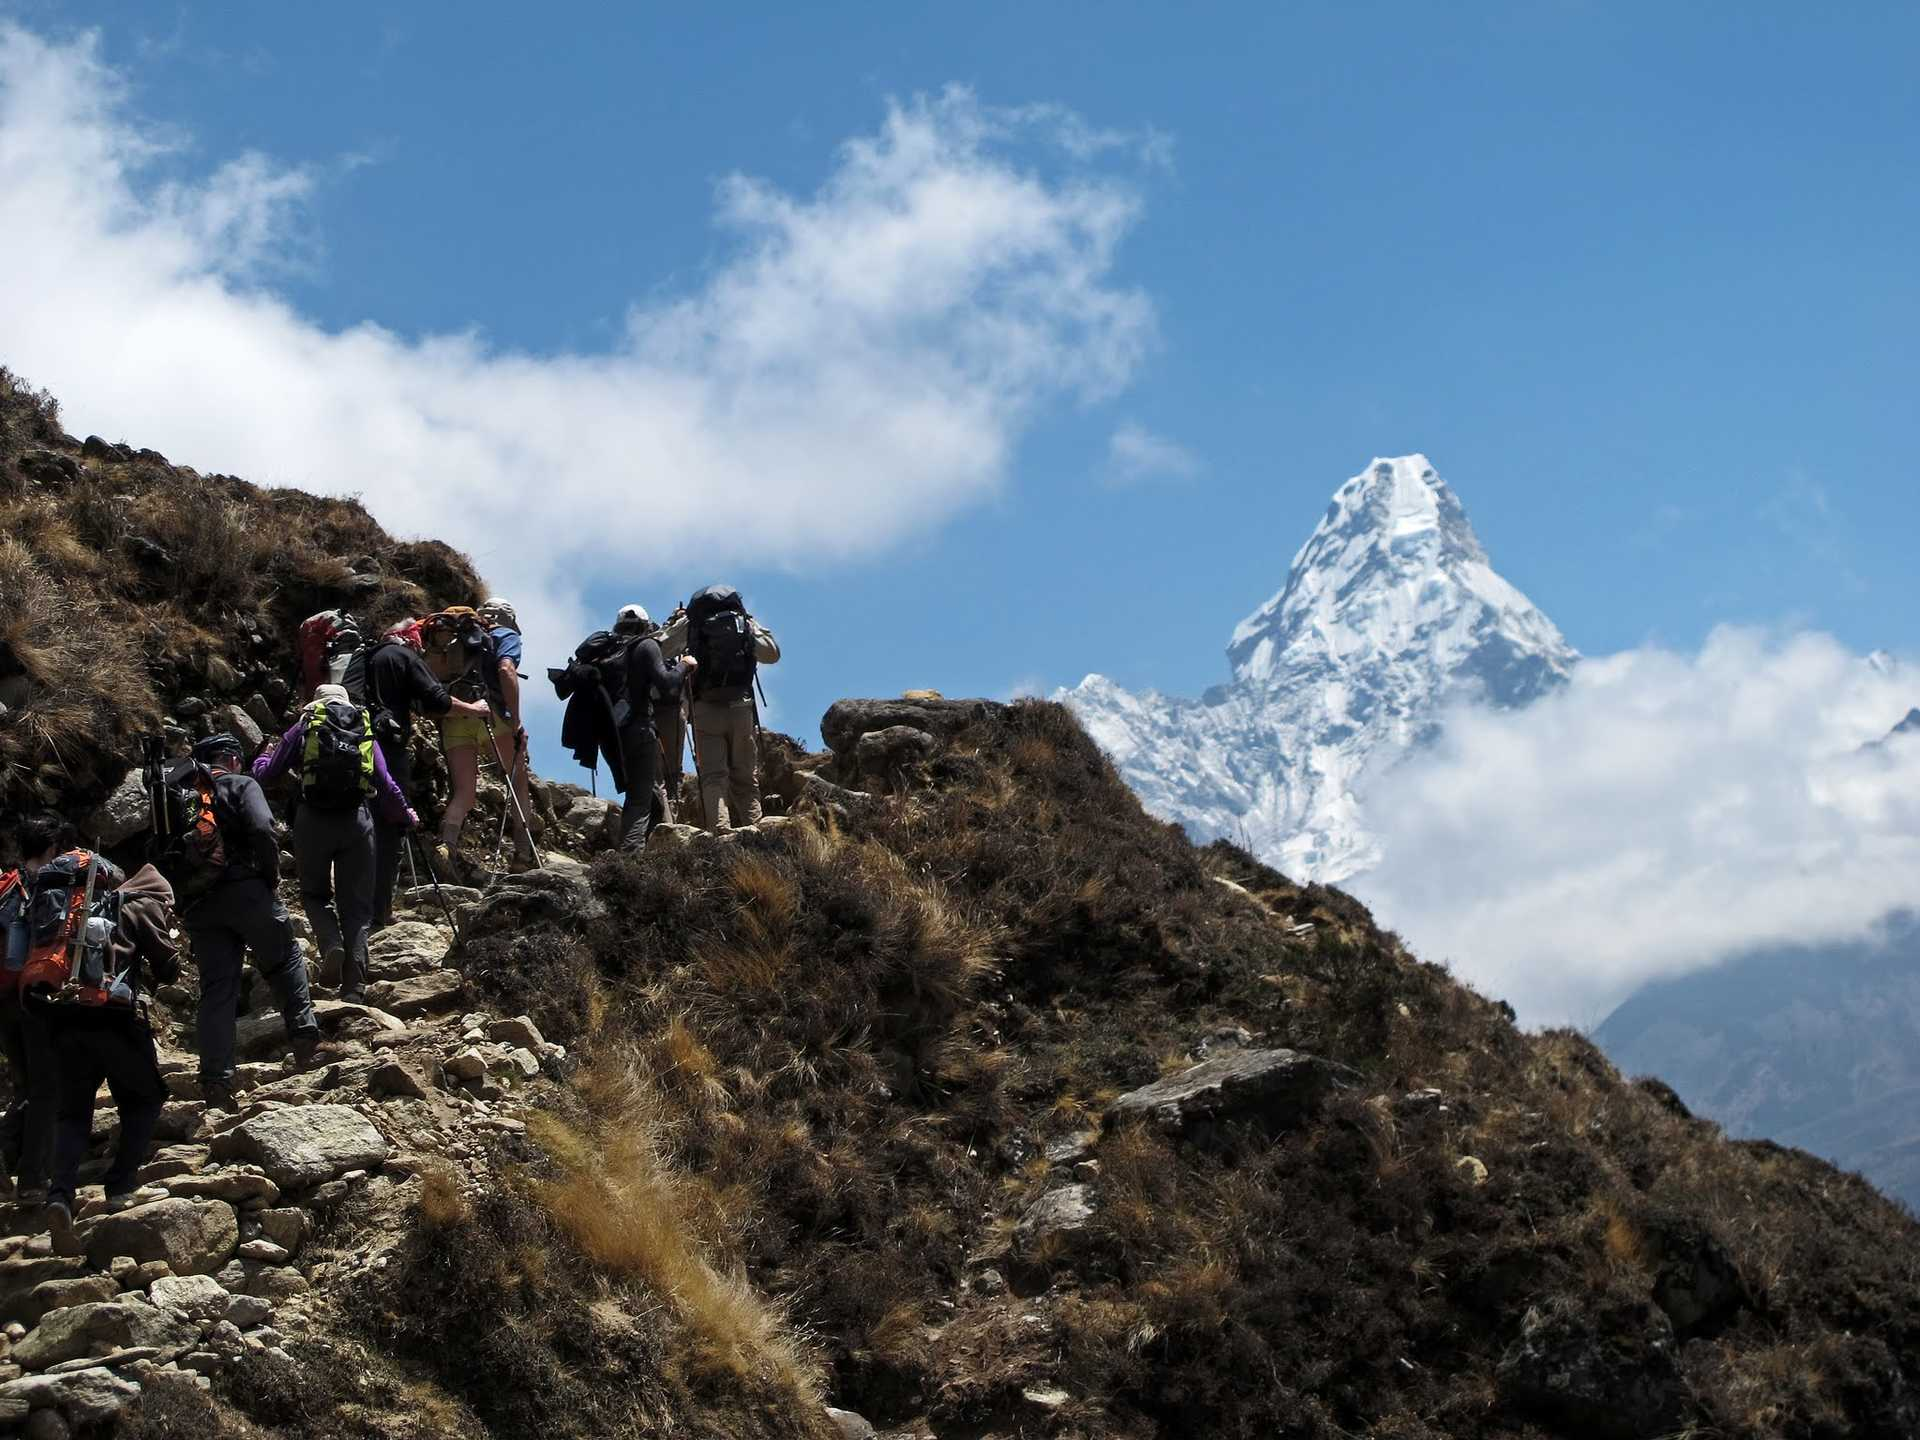 Hikers in front of Ama Dablam